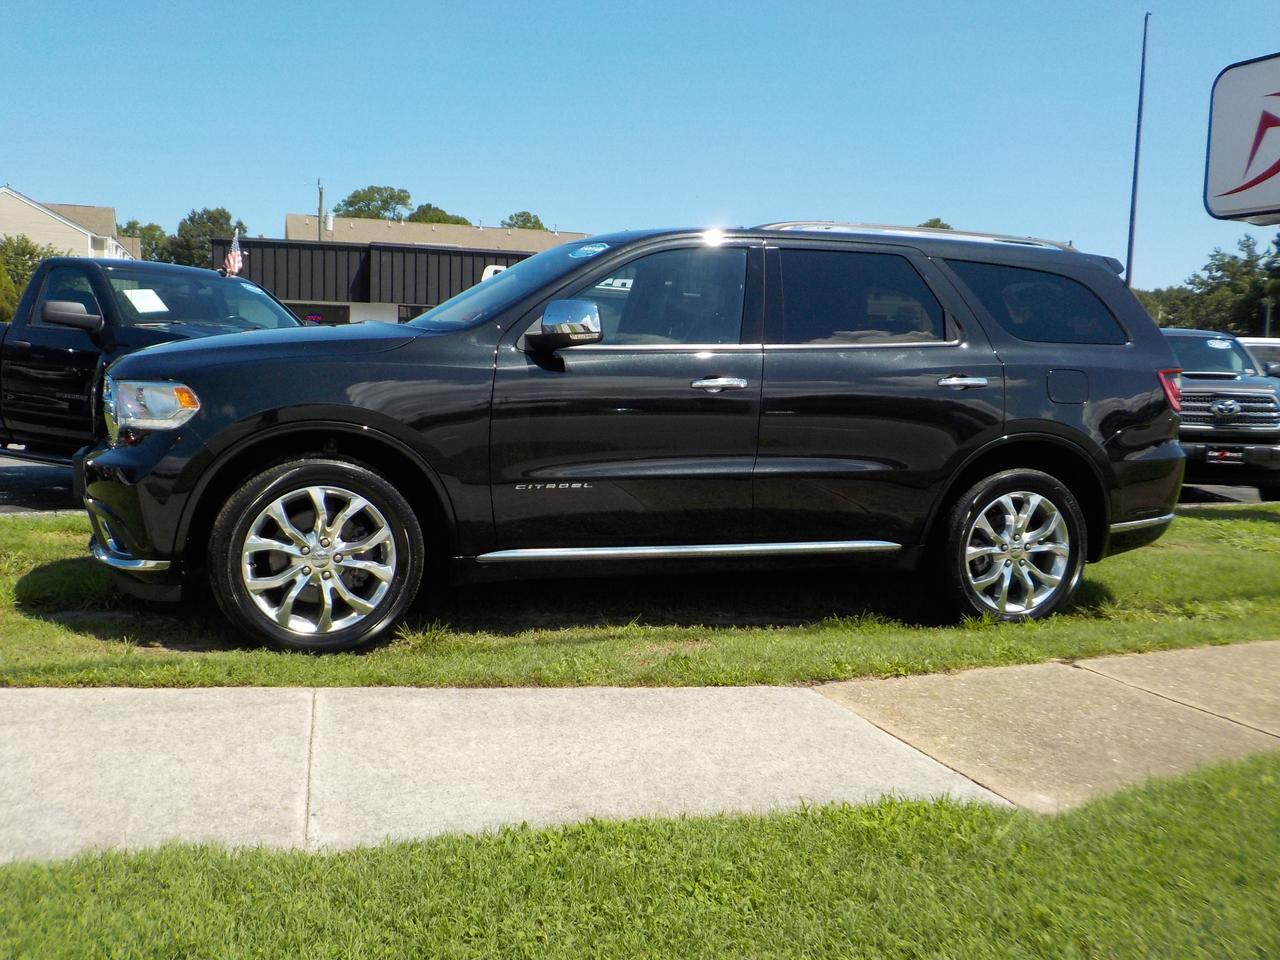 2016 DODGE DURANGO CITADEL AWD, NAVIGATION, BLU-RAY DVD SYSTEM, BACKUP CAM, HEATED AND COOLED LEATHER, EVERY OPTION!!! Virginia Beach VA